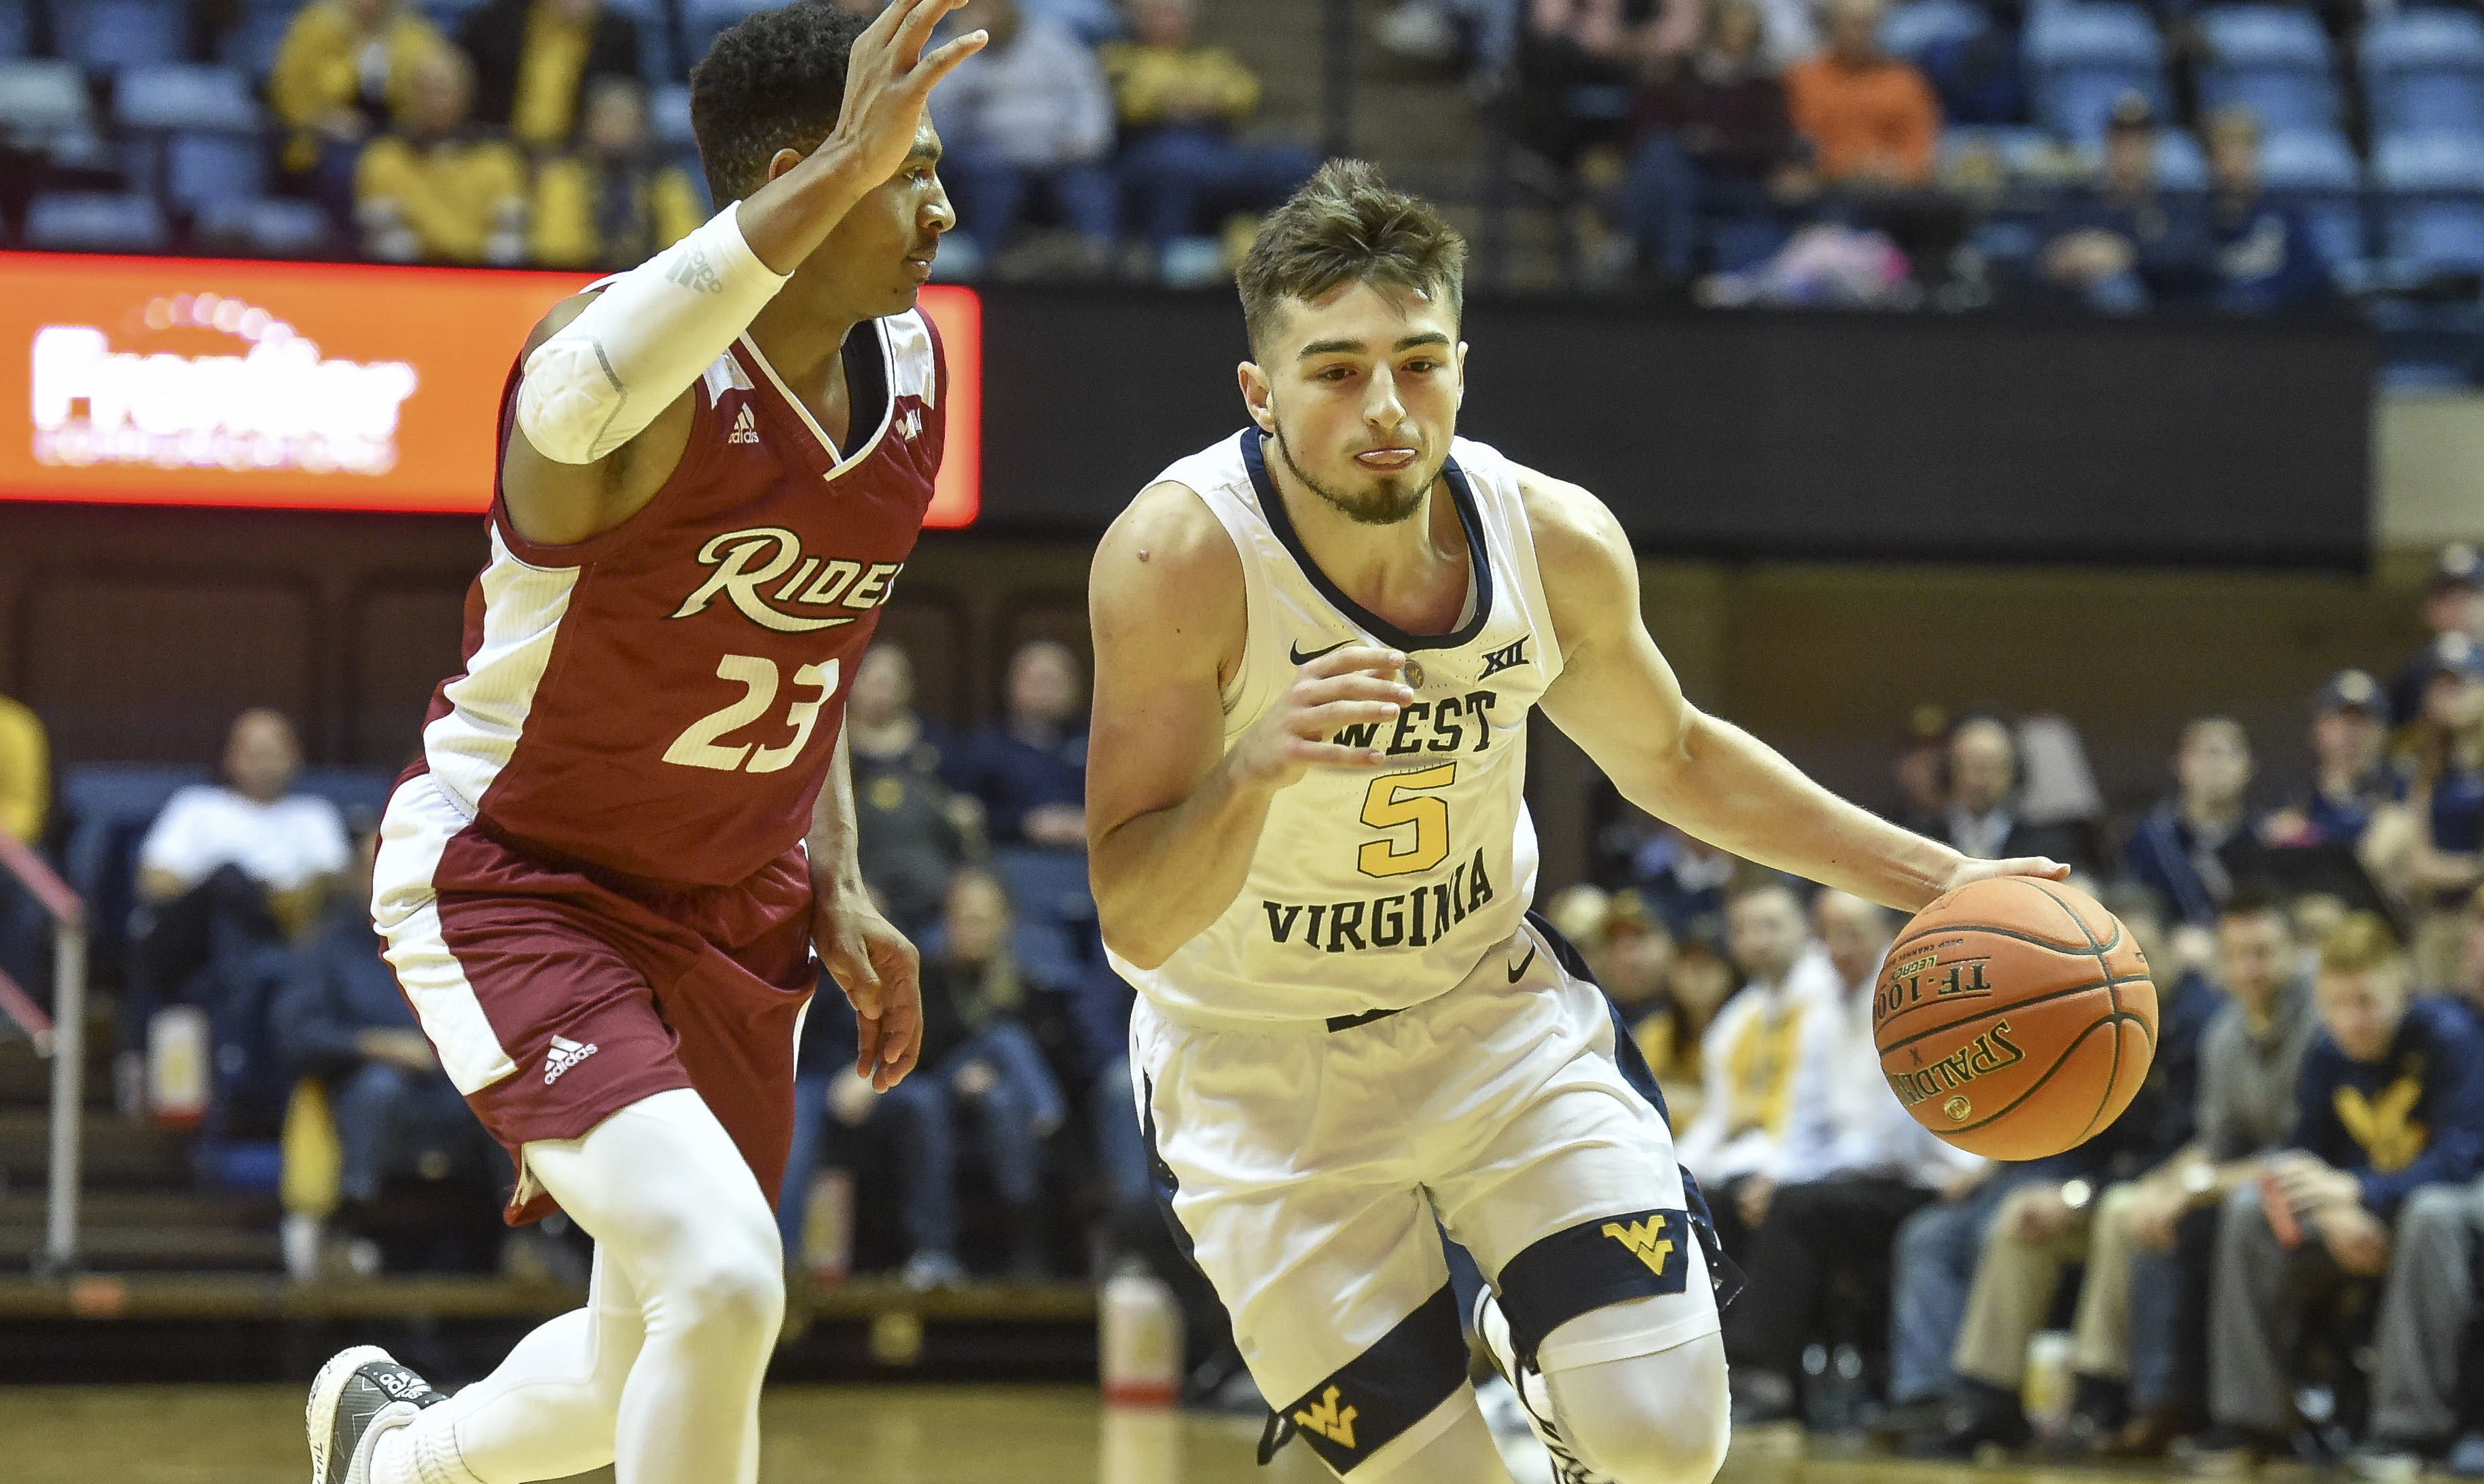 04e1869a419 WV MetroNews West swishes, McCabe dishes as Mountaineers down Rider, 92-78  - WV MetroNews